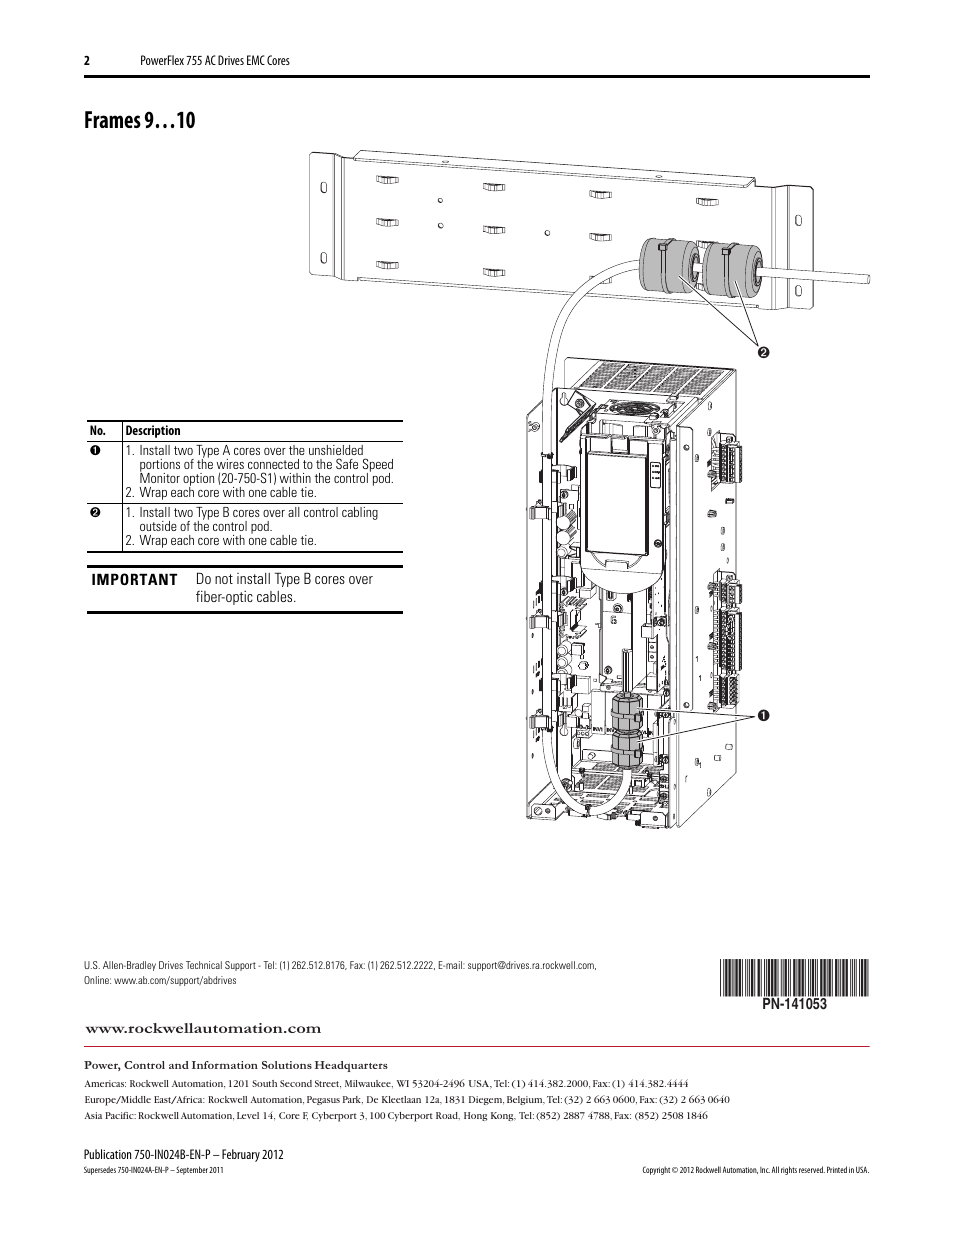 Powerflex 755 Wiring Diagram Frame 8 Trusted Diagrams 753 Control Frames 9 10 Rockwell Automation 21g Emc Core Kit Fault Codes